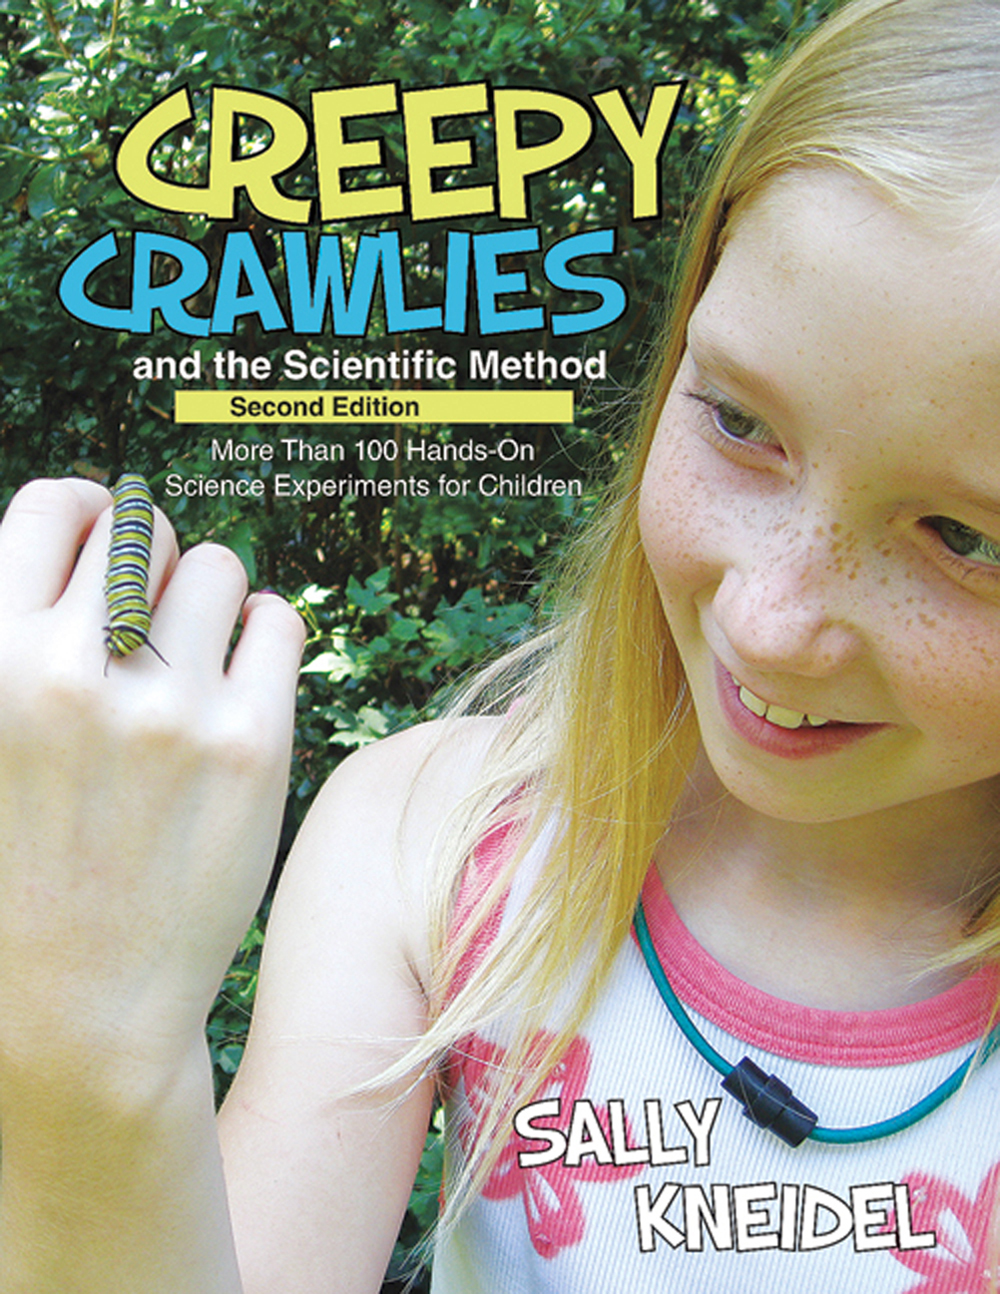 Creepy Crawlies and the Scientific Method (2nd Edition)